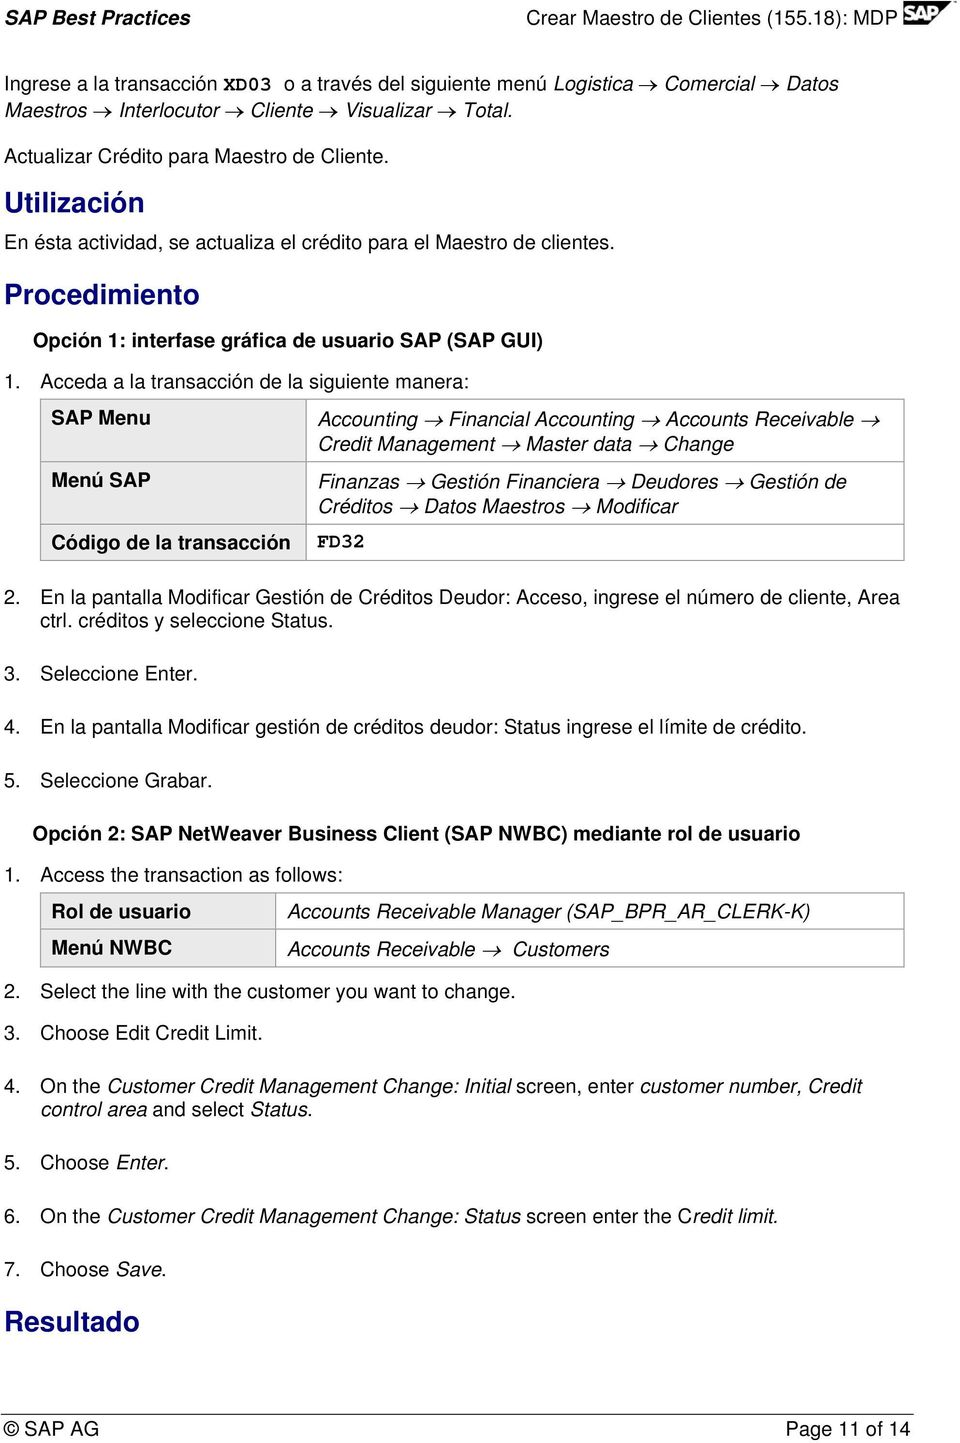 Acceda a la transacción de la siguiente manera: SAP Menu Accounting Financial Accounting Accounts Receivable Credit Management Master data Change Menú SAP Código de la transacción Finanzas Gestión